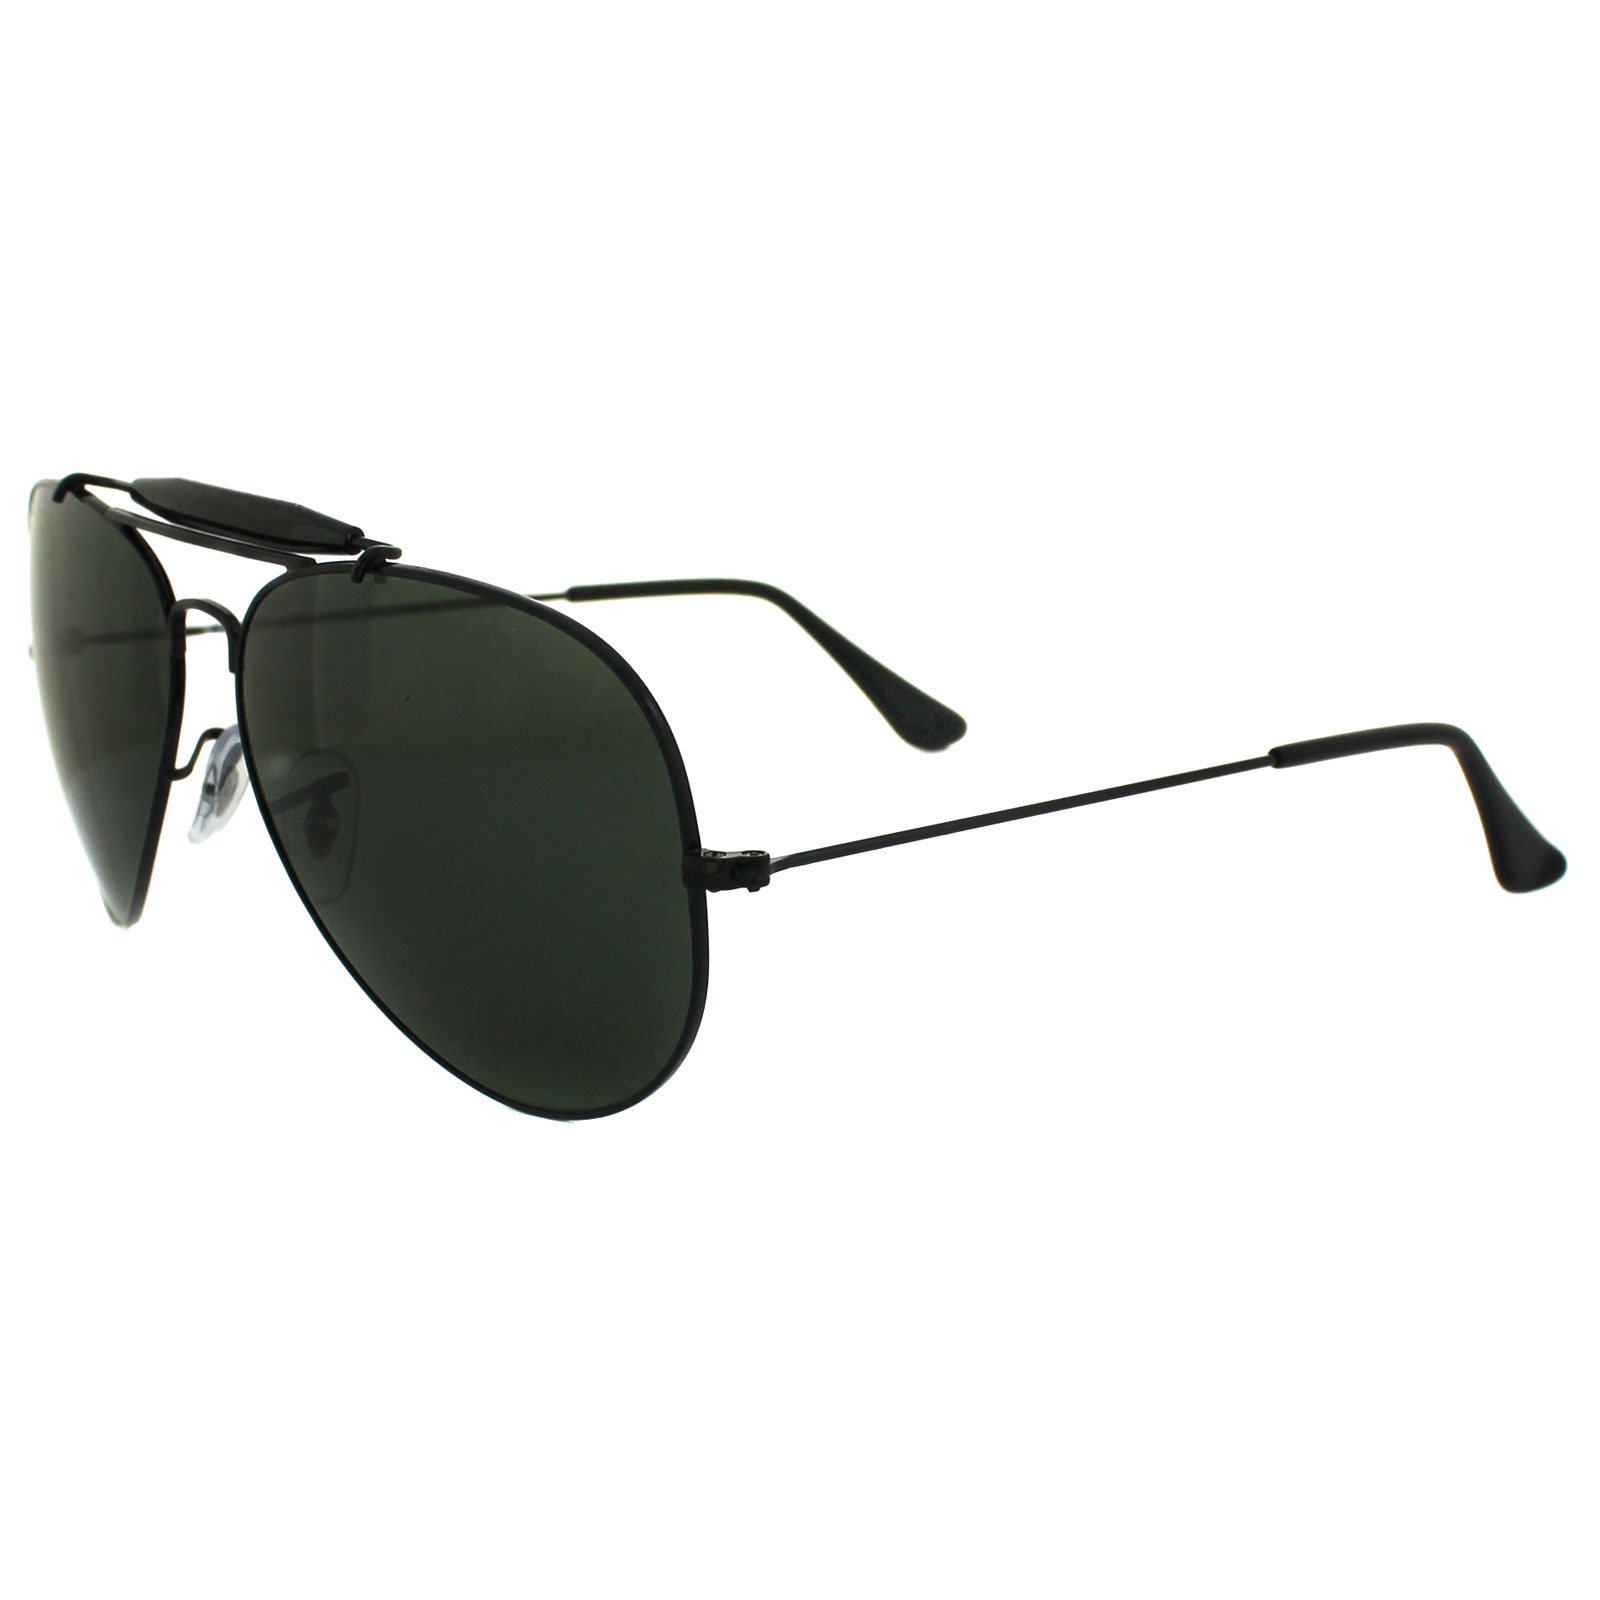 f537f59f70b236 Cheap Ray-Ban Outdoorsman II 3029 Sunglasses - Discounted Sunglasses